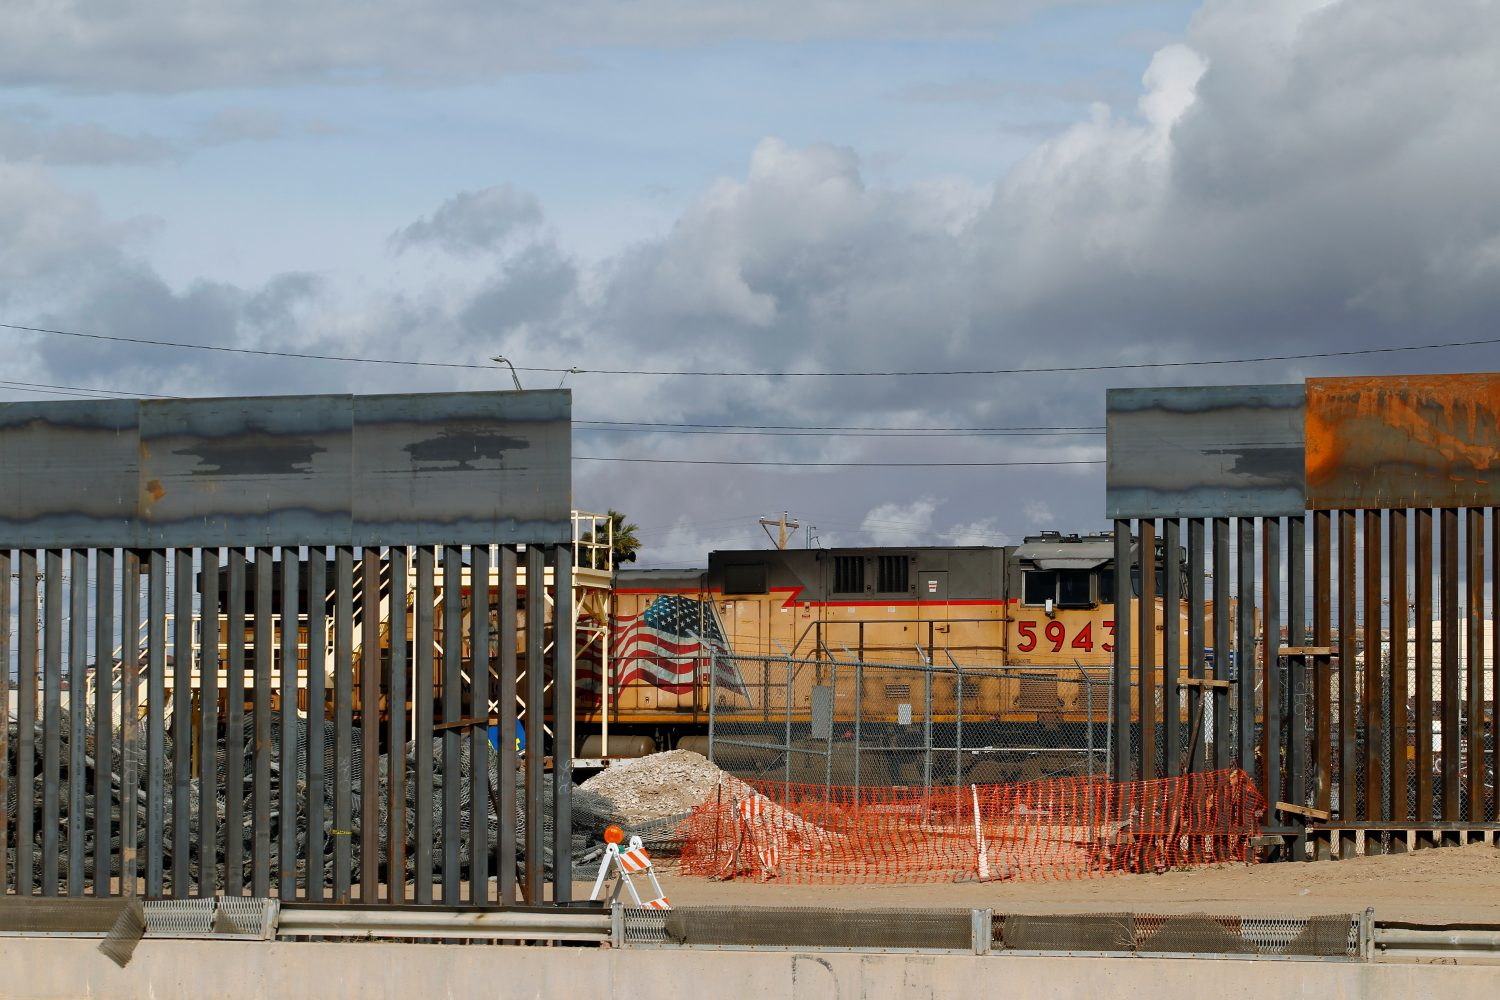 A view shows a new section of the border fence in El Paso, Texas, U.S., as seen from Ciudad Juarez, Mexico February 15, 2019. REUTERS/Jose Luis Gonzalez